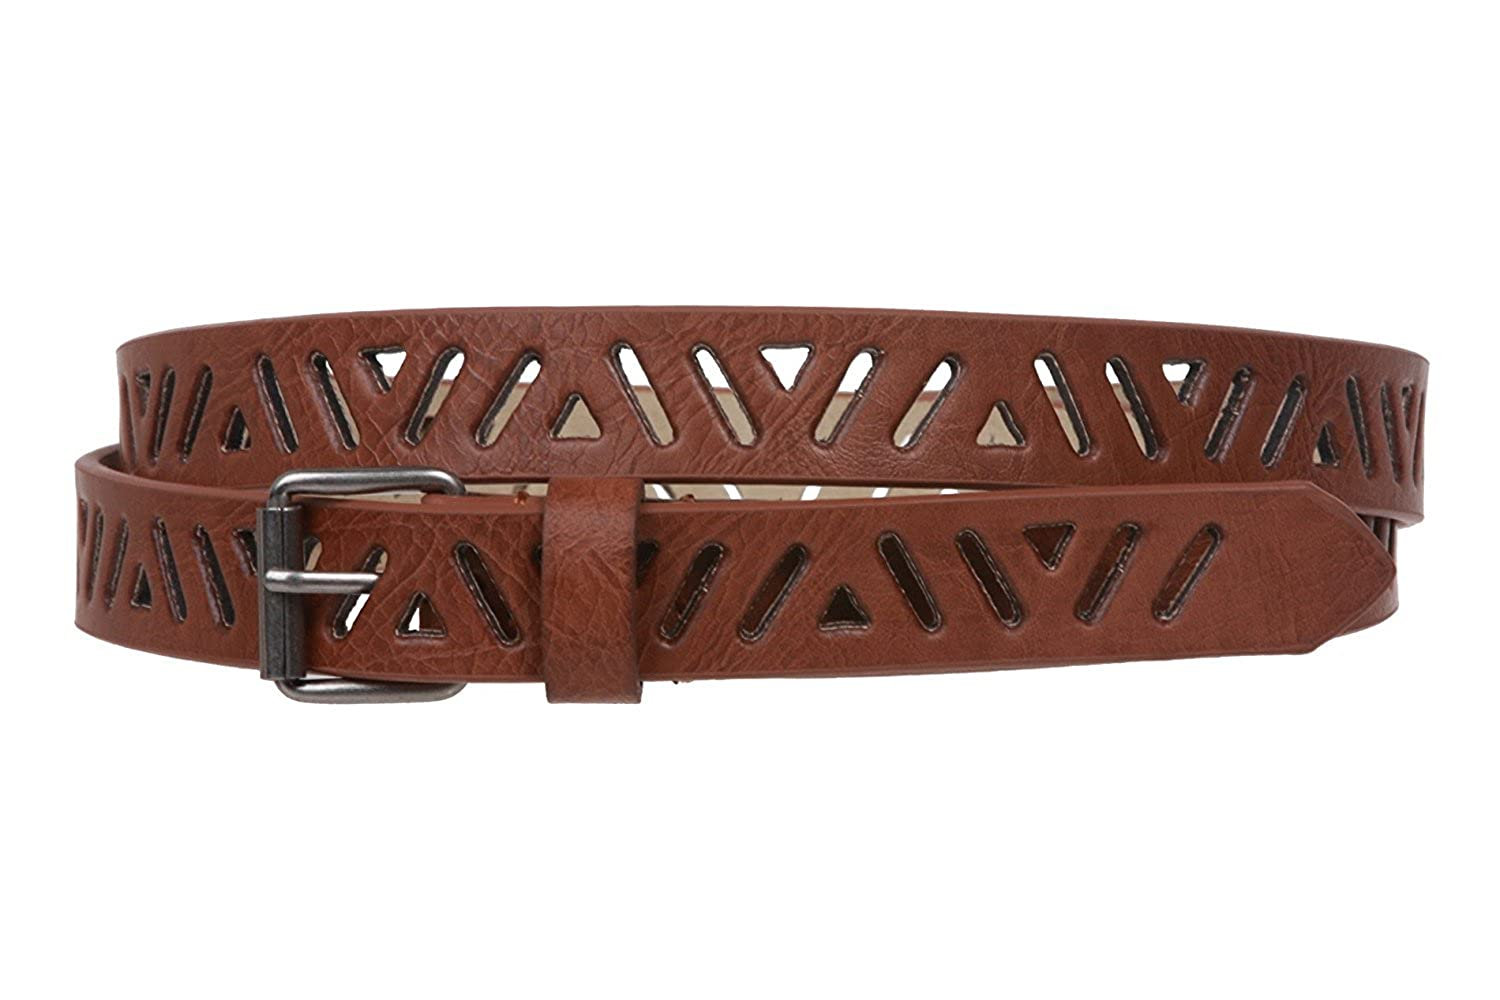 MONIQUE Women Perforated Skinny Roller Buckle Bonded Leather 19mm Wide Belt